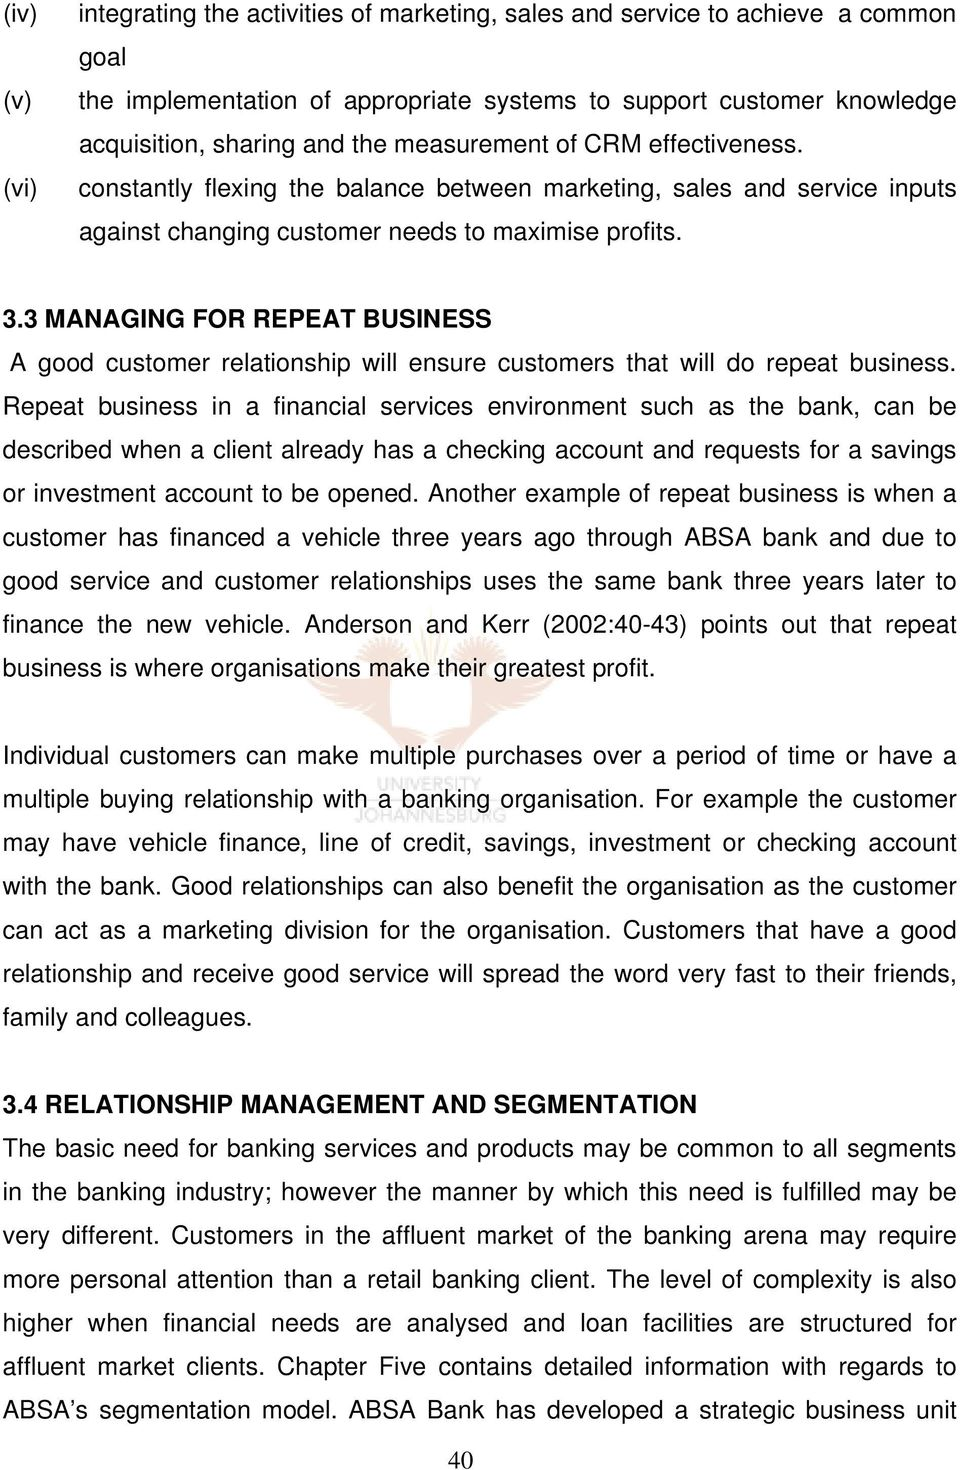 3 MANAGING FOR REPEAT BUSINESS A good customer relationship will ensure customers that will do repeat business.